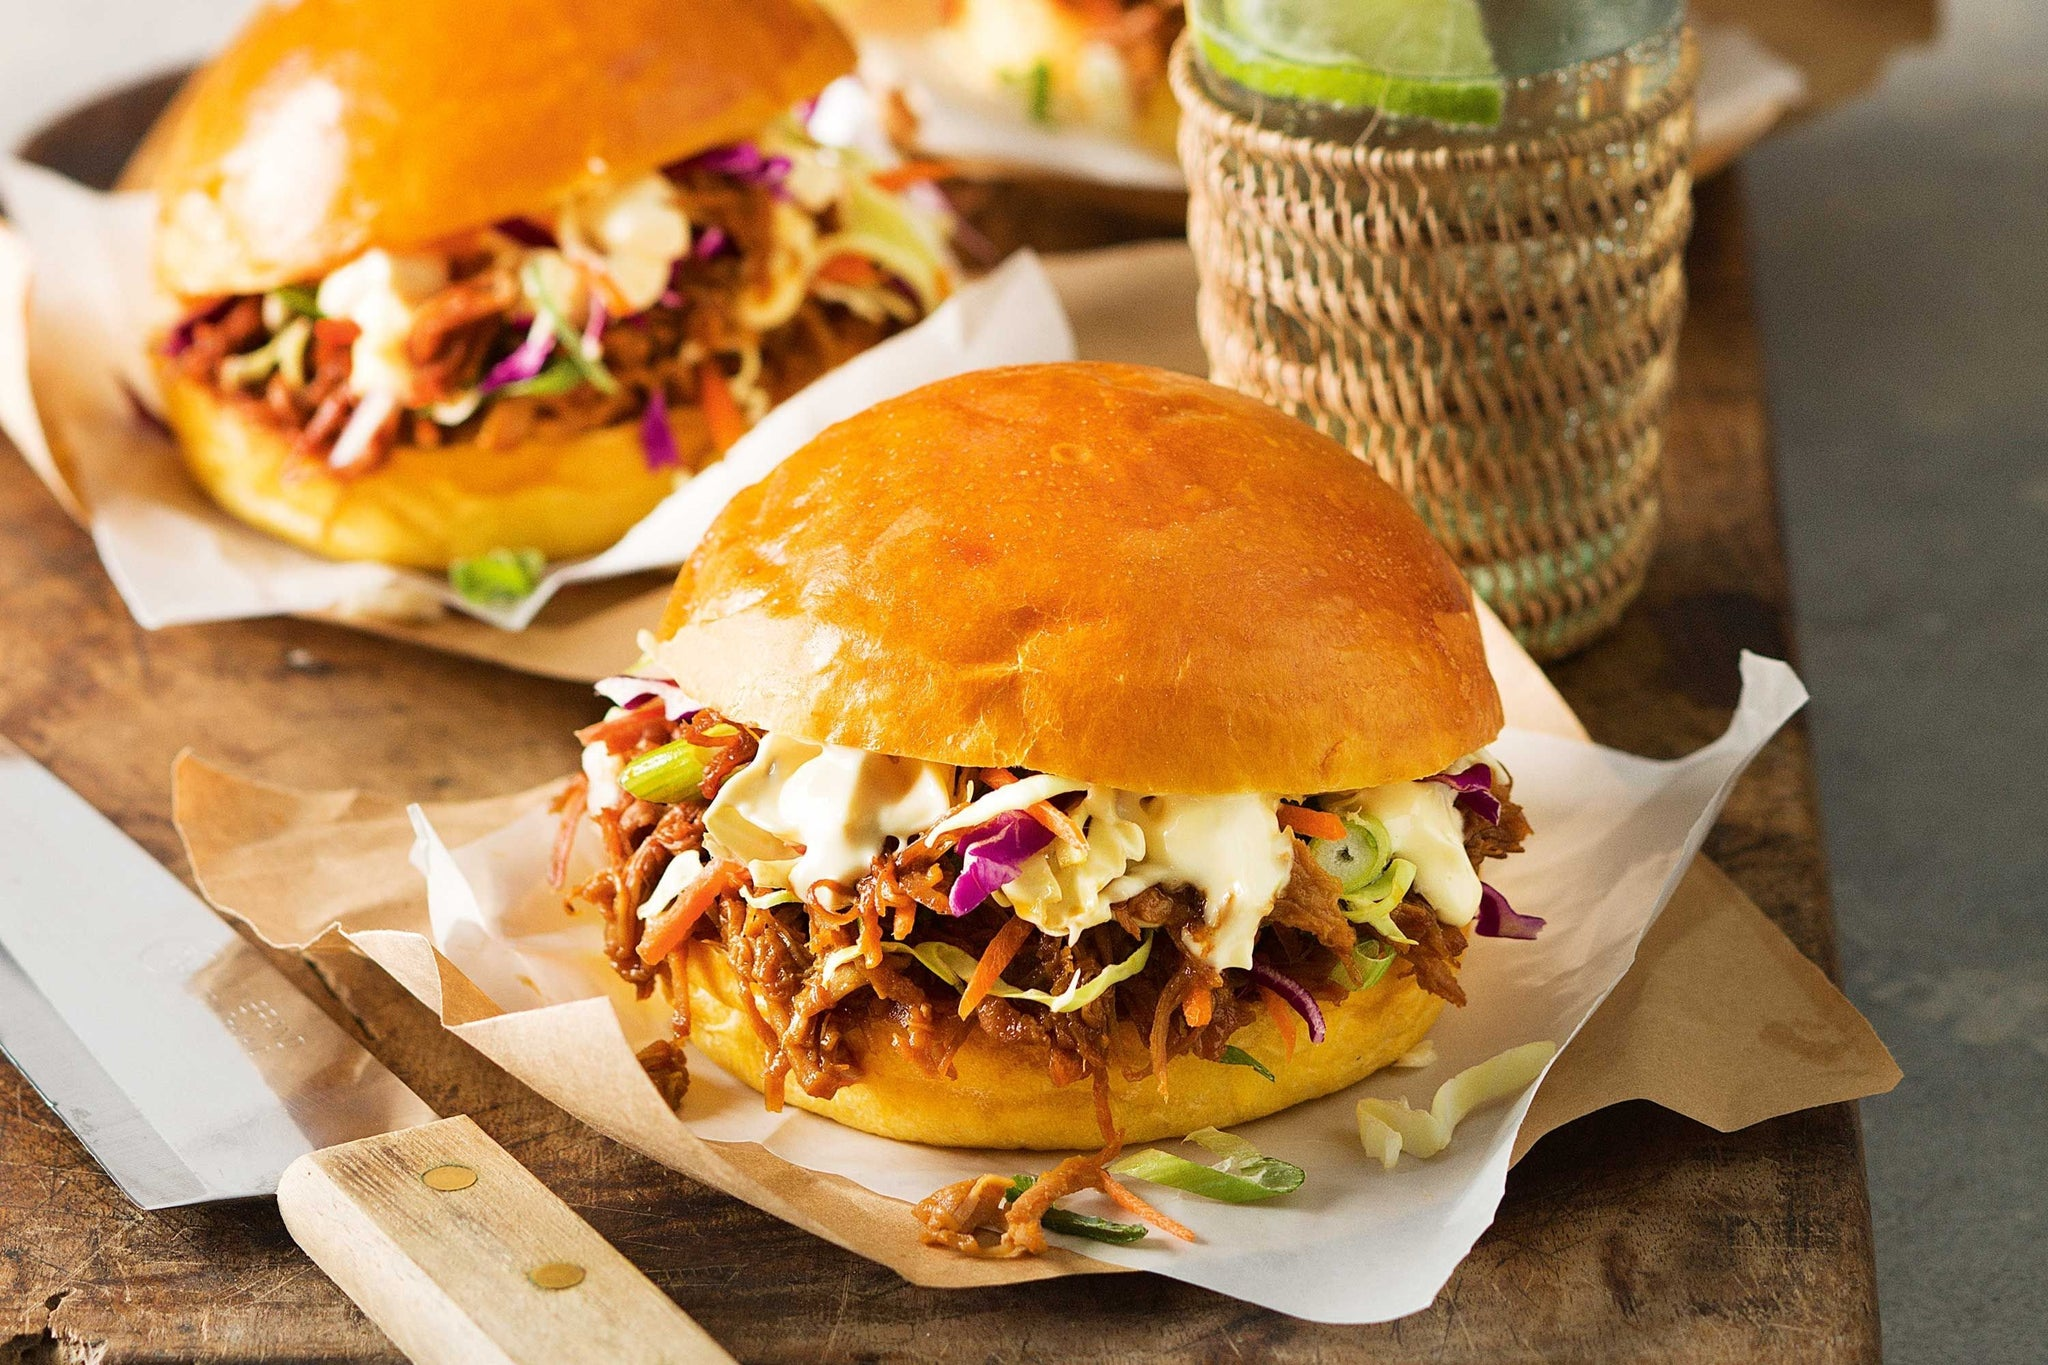 Hawaian-Style Pulled Pork Burger